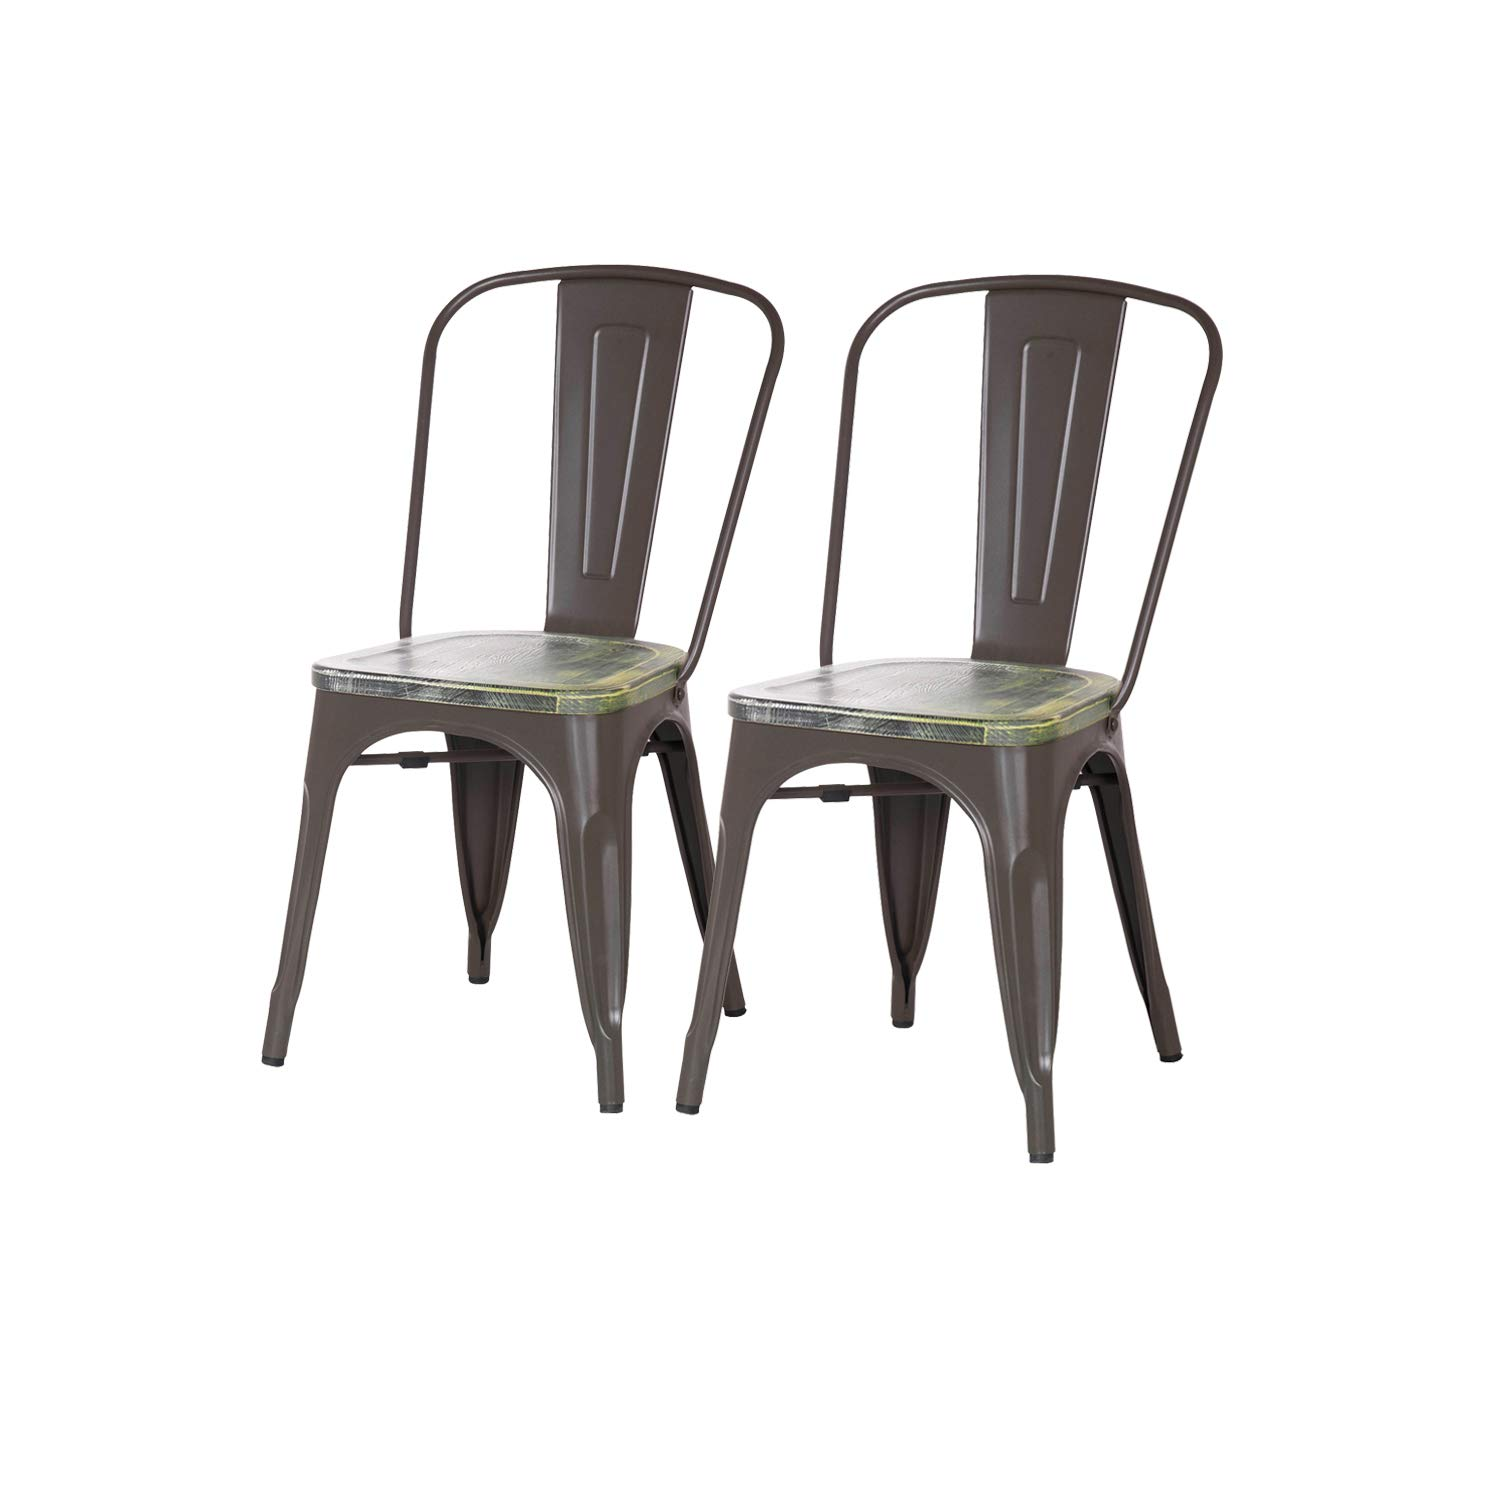 Adeco Metal Stackable Industrial Chic Dining Bistro Cafe Side Chairs, Wooden Seat, Matte Dimgrey Set of 2